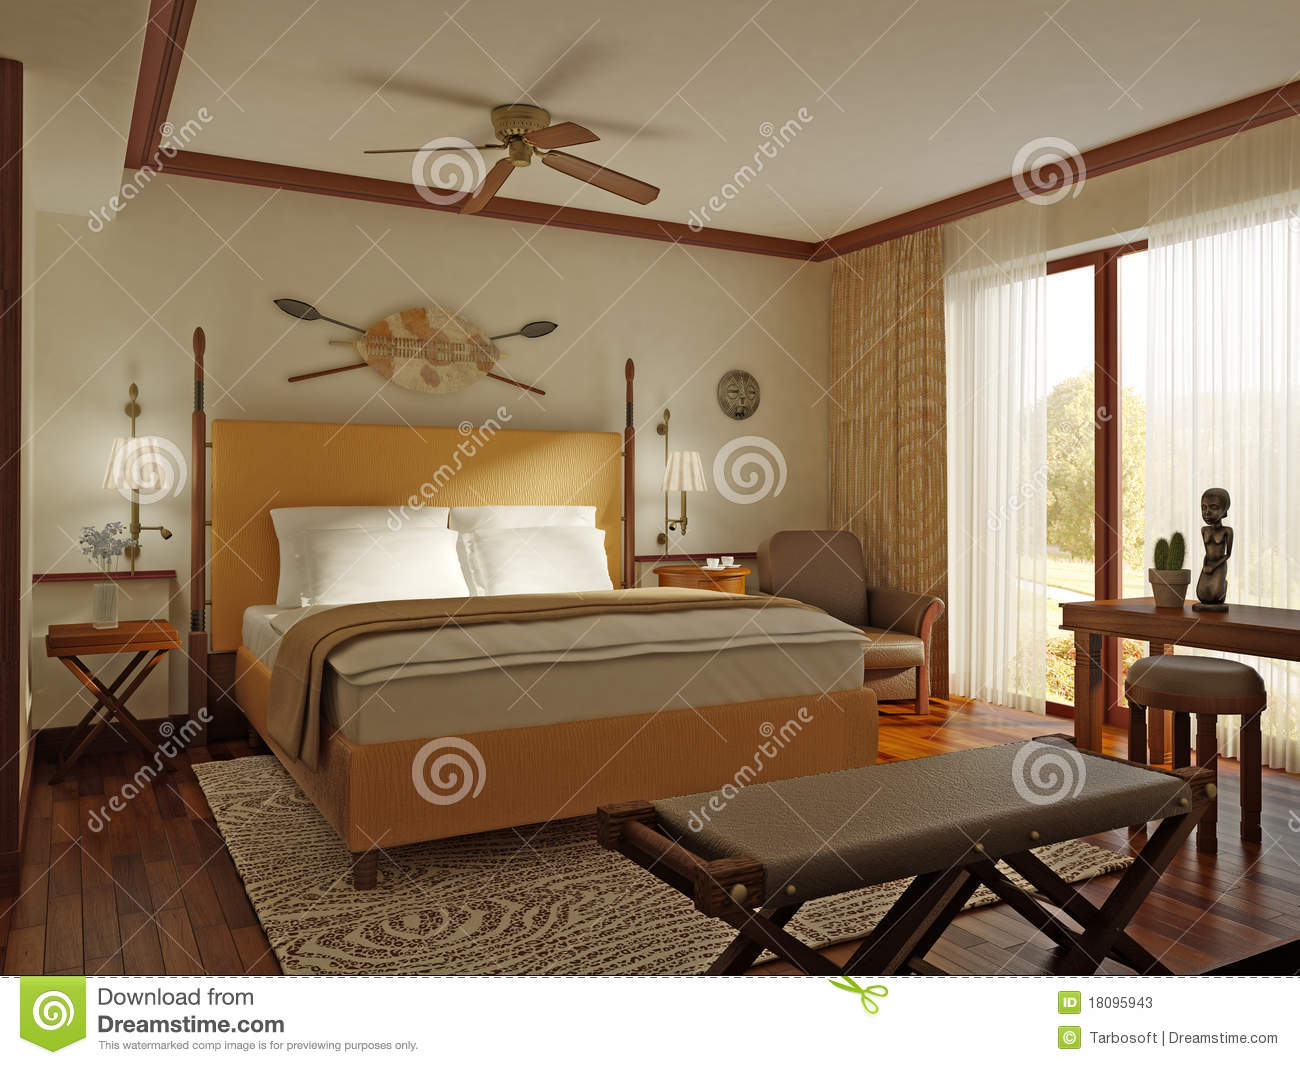 African style bedroom stock illustration Image of cactus